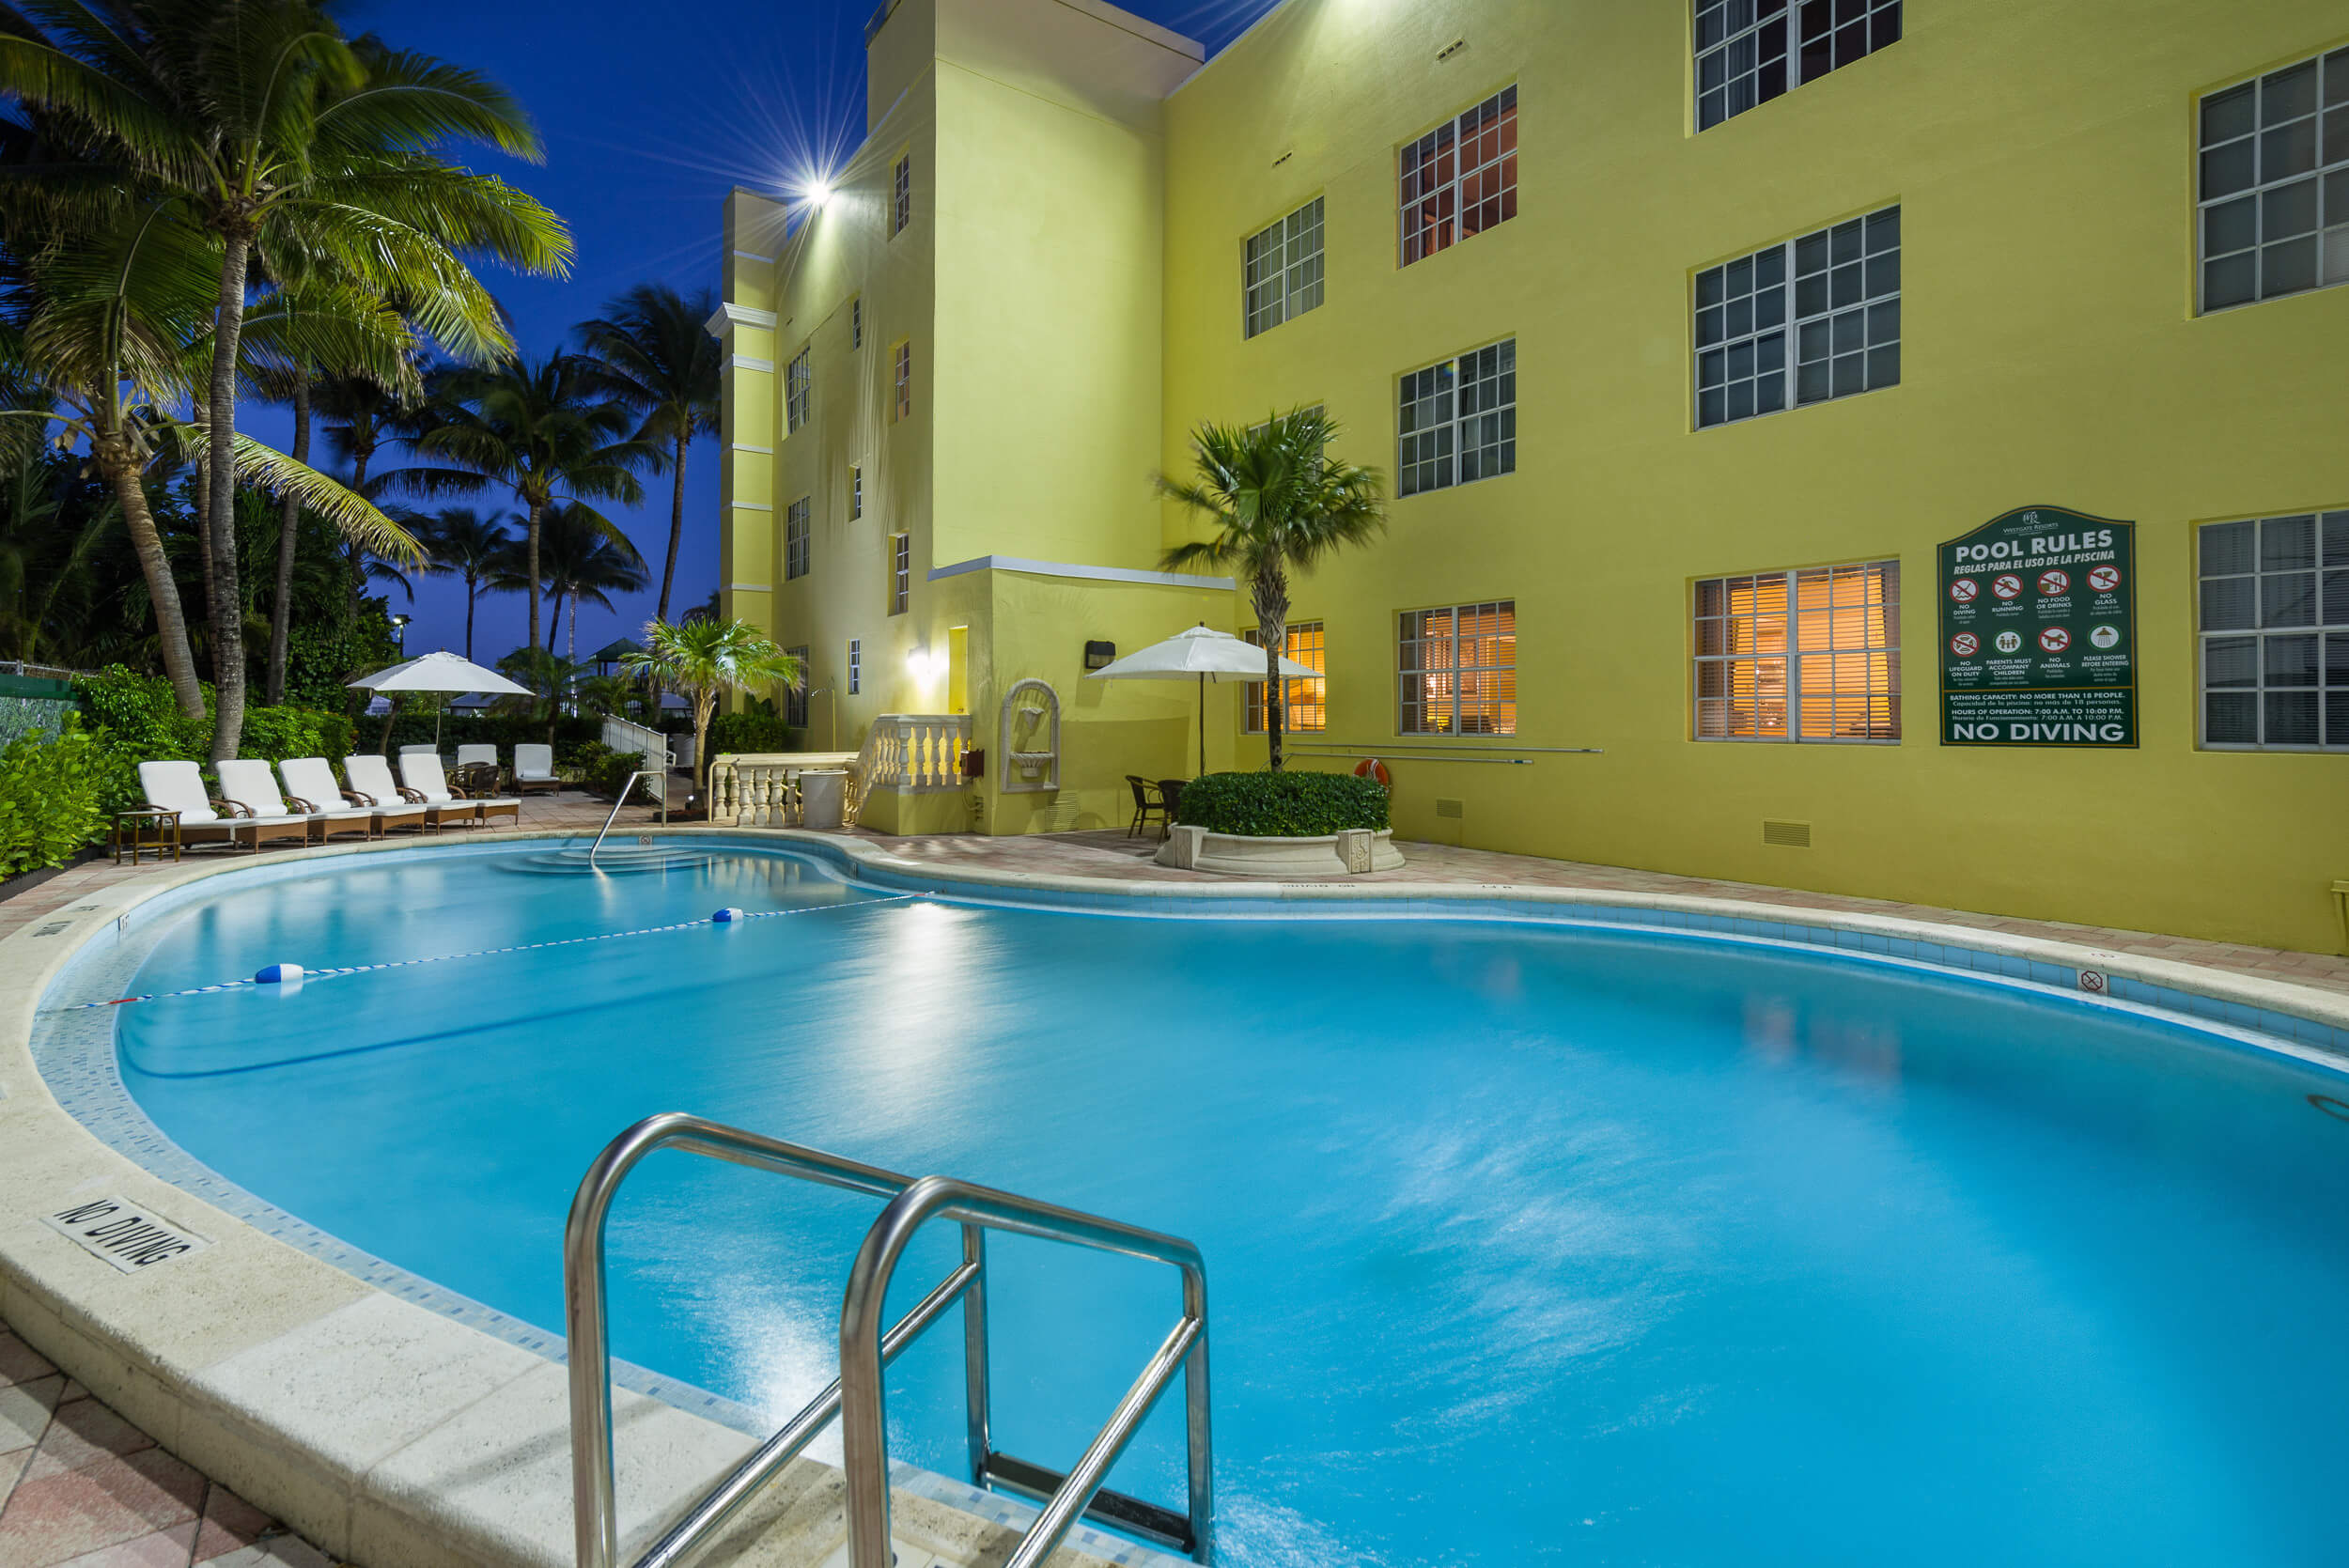 Looking for a South Beach Miami Oceanfront Hotel with a Pool? Come to Westgate South Beach Oceanfront Resort.